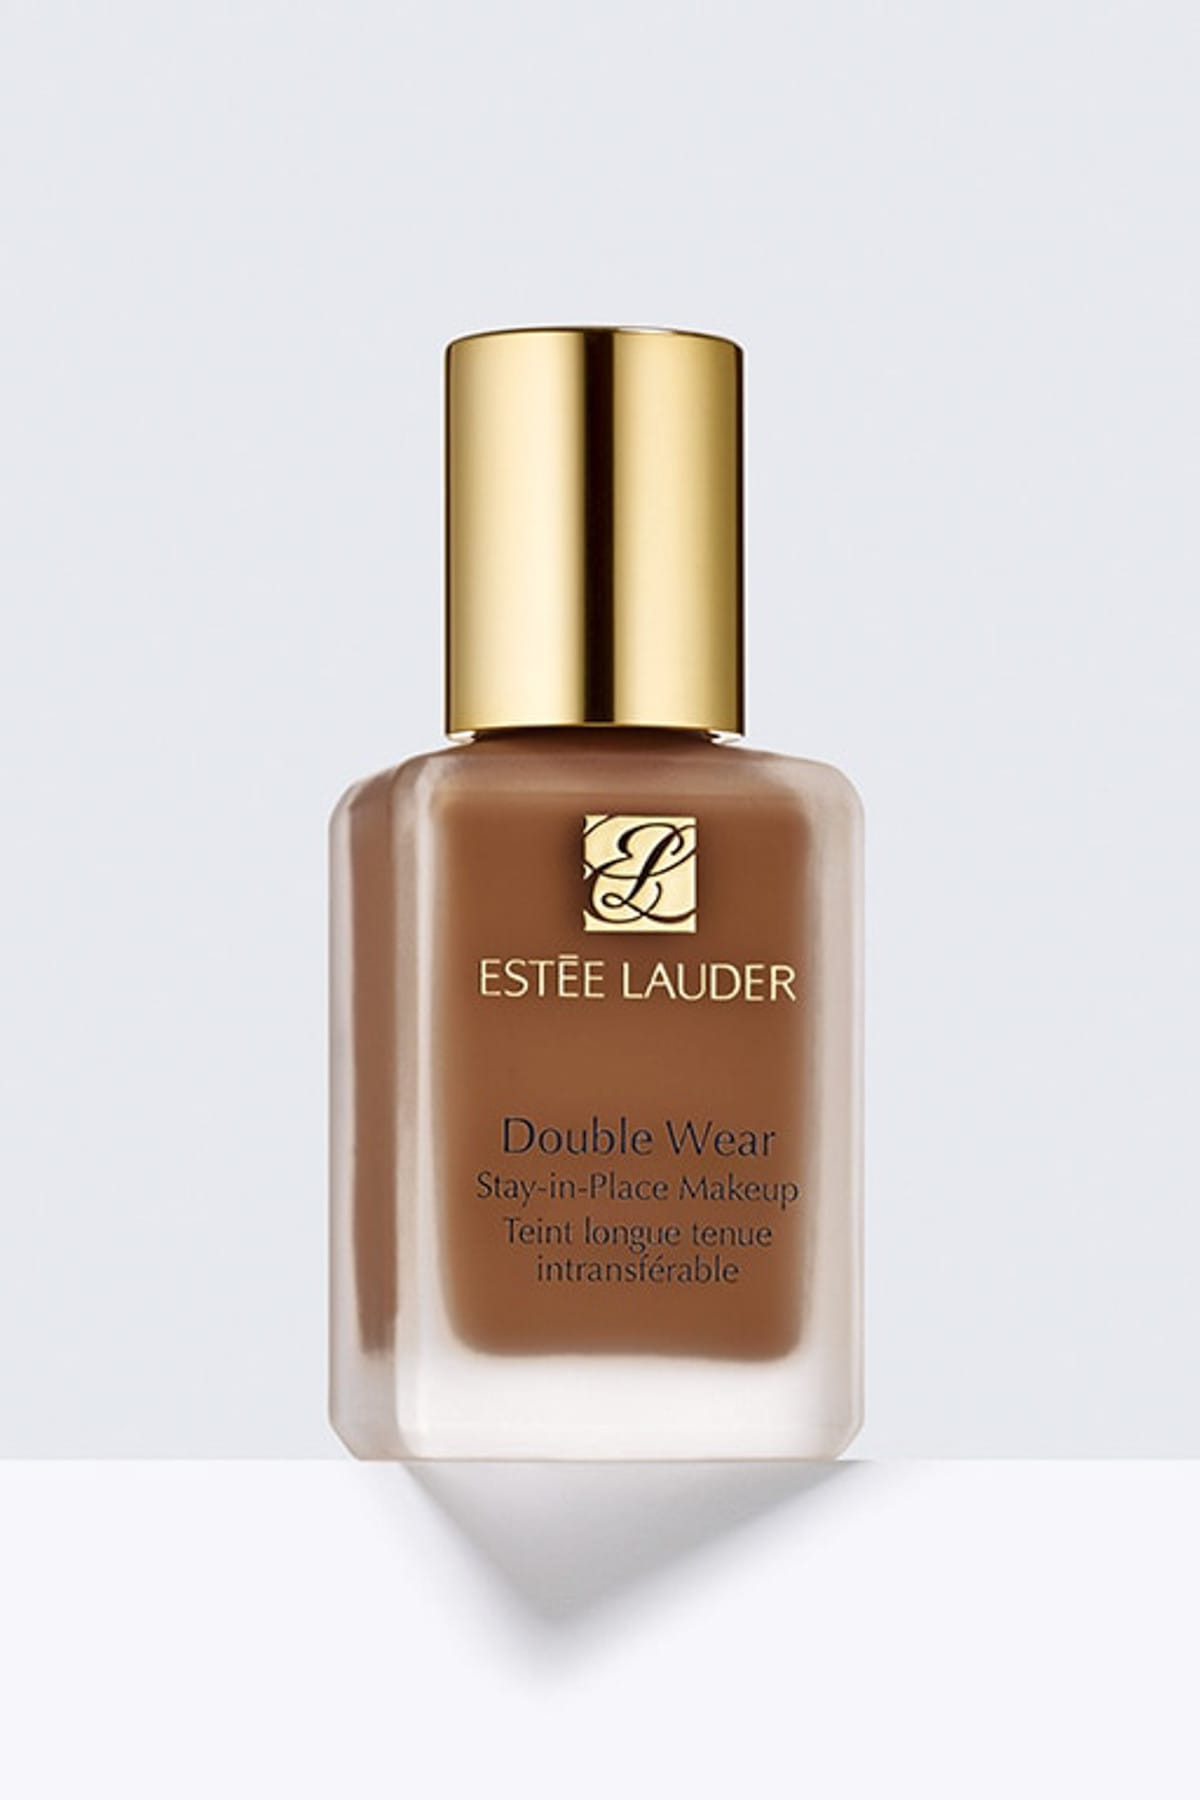 Estee Lauder Fondöten - Double Wear Foundation S.I.P Spf 10 6N1 Mocha 30 ml 887167178014 1